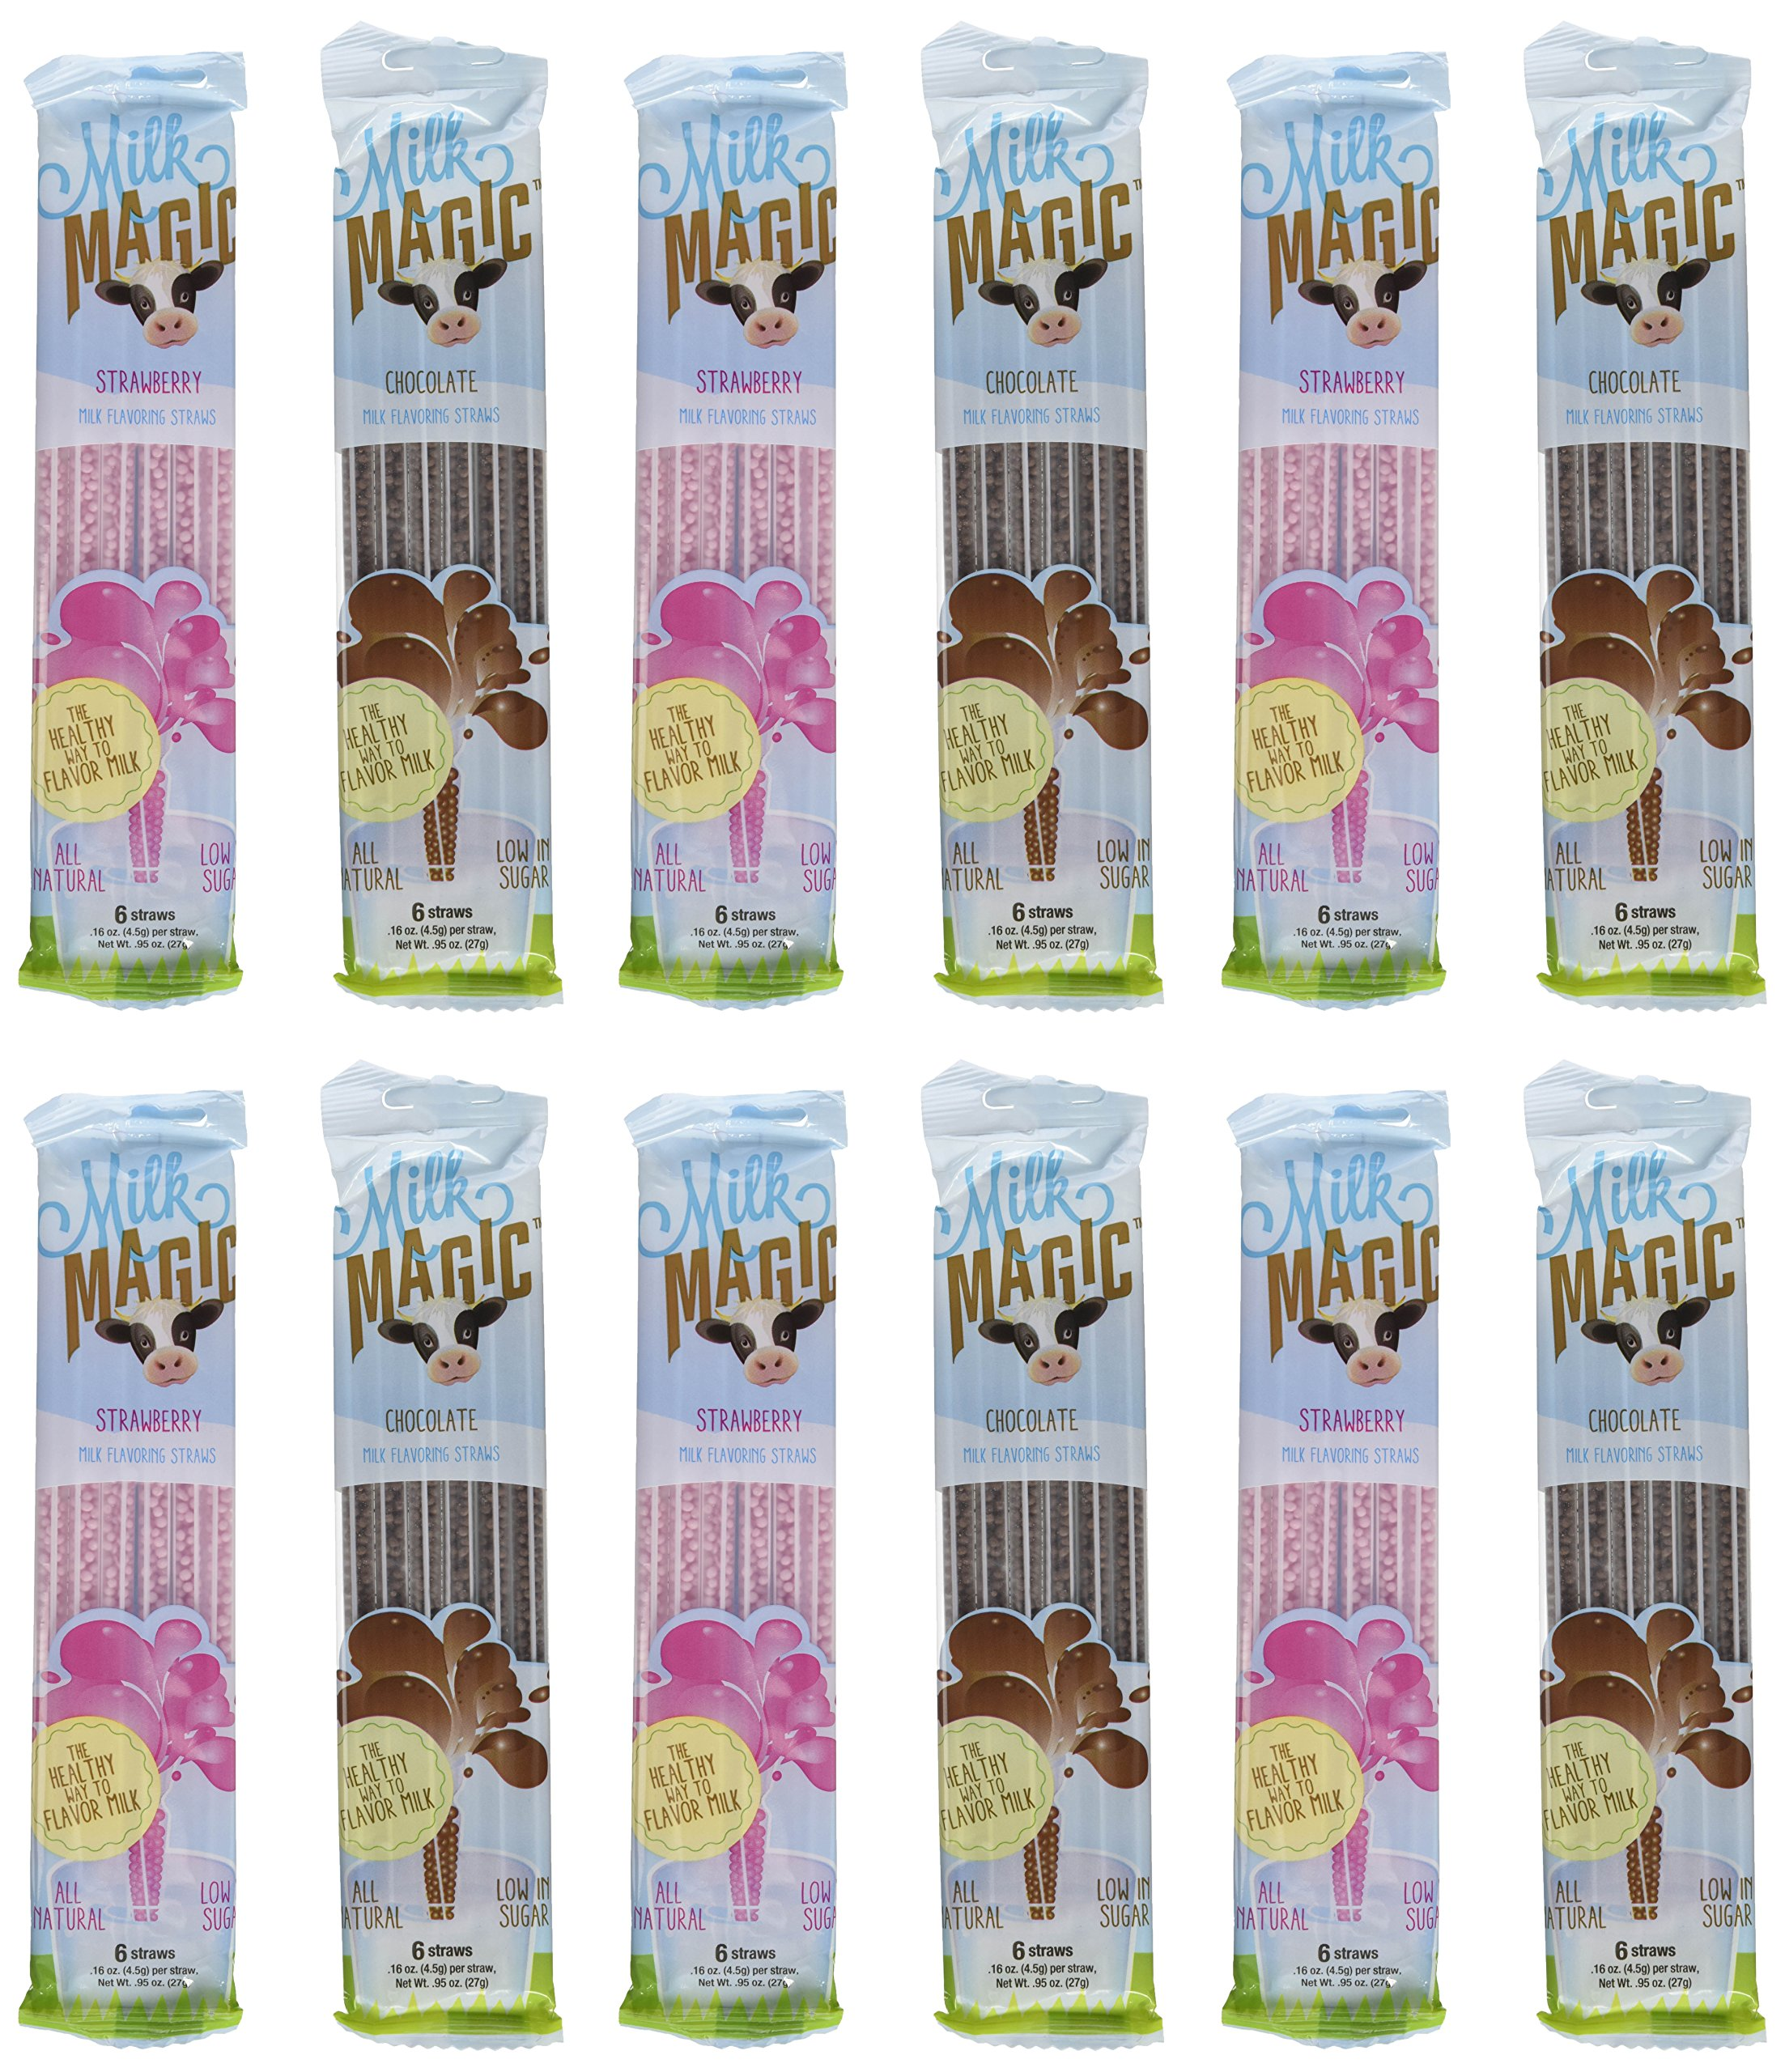 Milk Magic, Milk Flavoring Straws, Variety Pack Including Chocolate and Strawberry, 12 Six-Packs, 6 of Each Flavor by Got Milk?